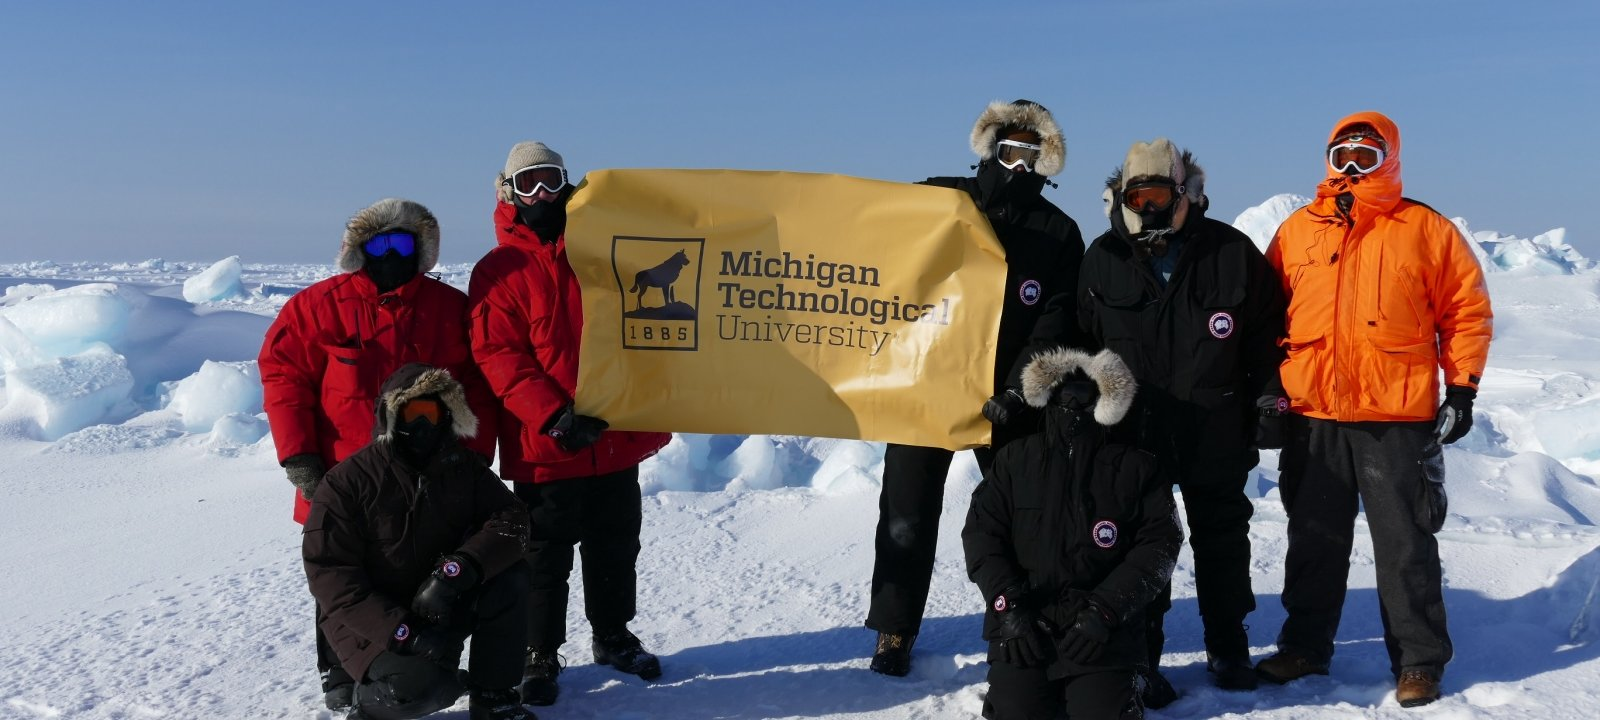 MTRI Scientists working on an arctic sensing project and holding a Michigan Tech banner near Barrow, AK